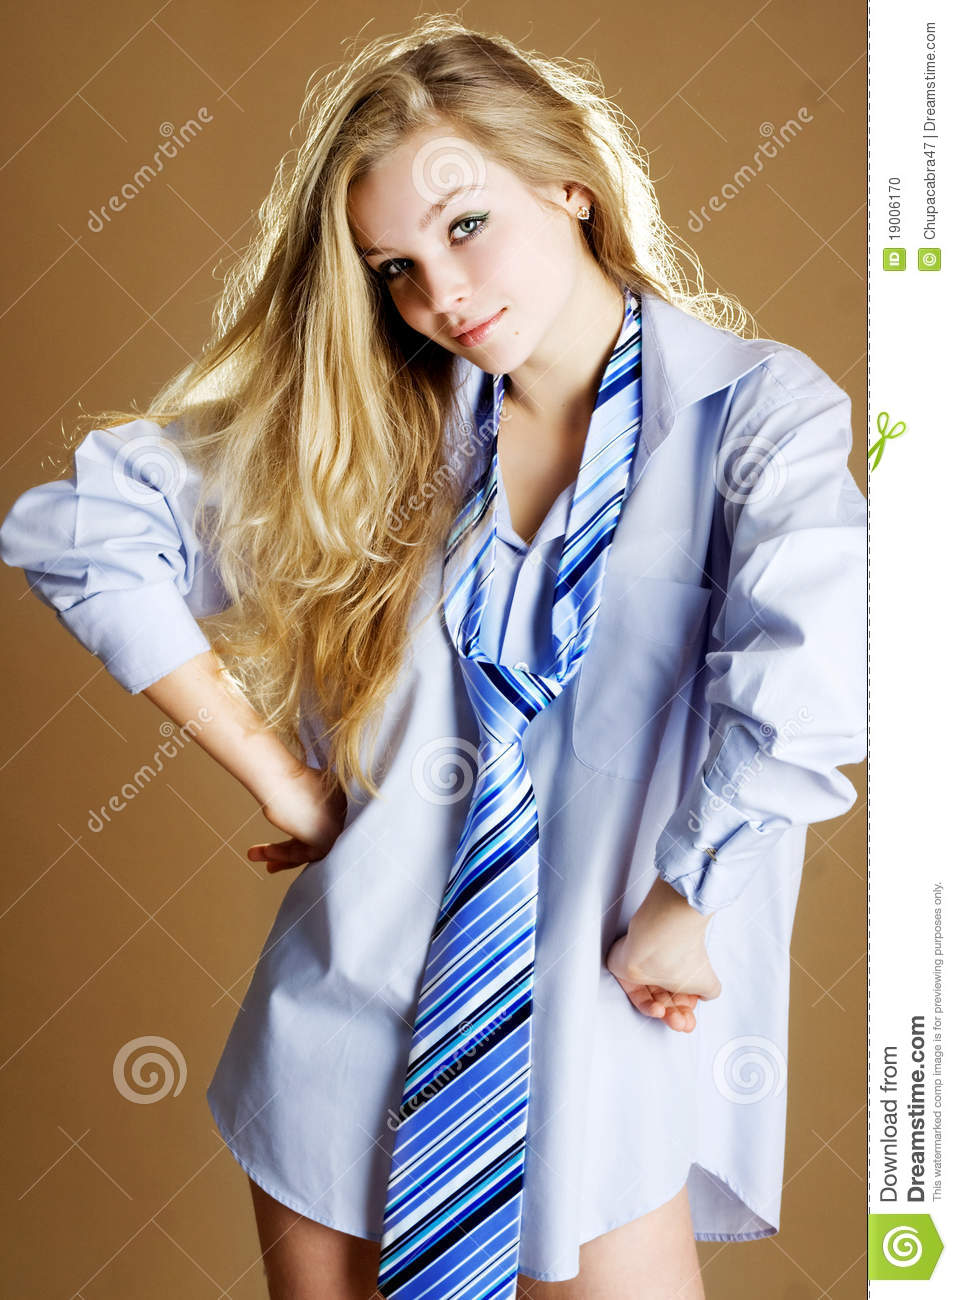 Shirt And Tie Girl Stock Photo  Image 19006170